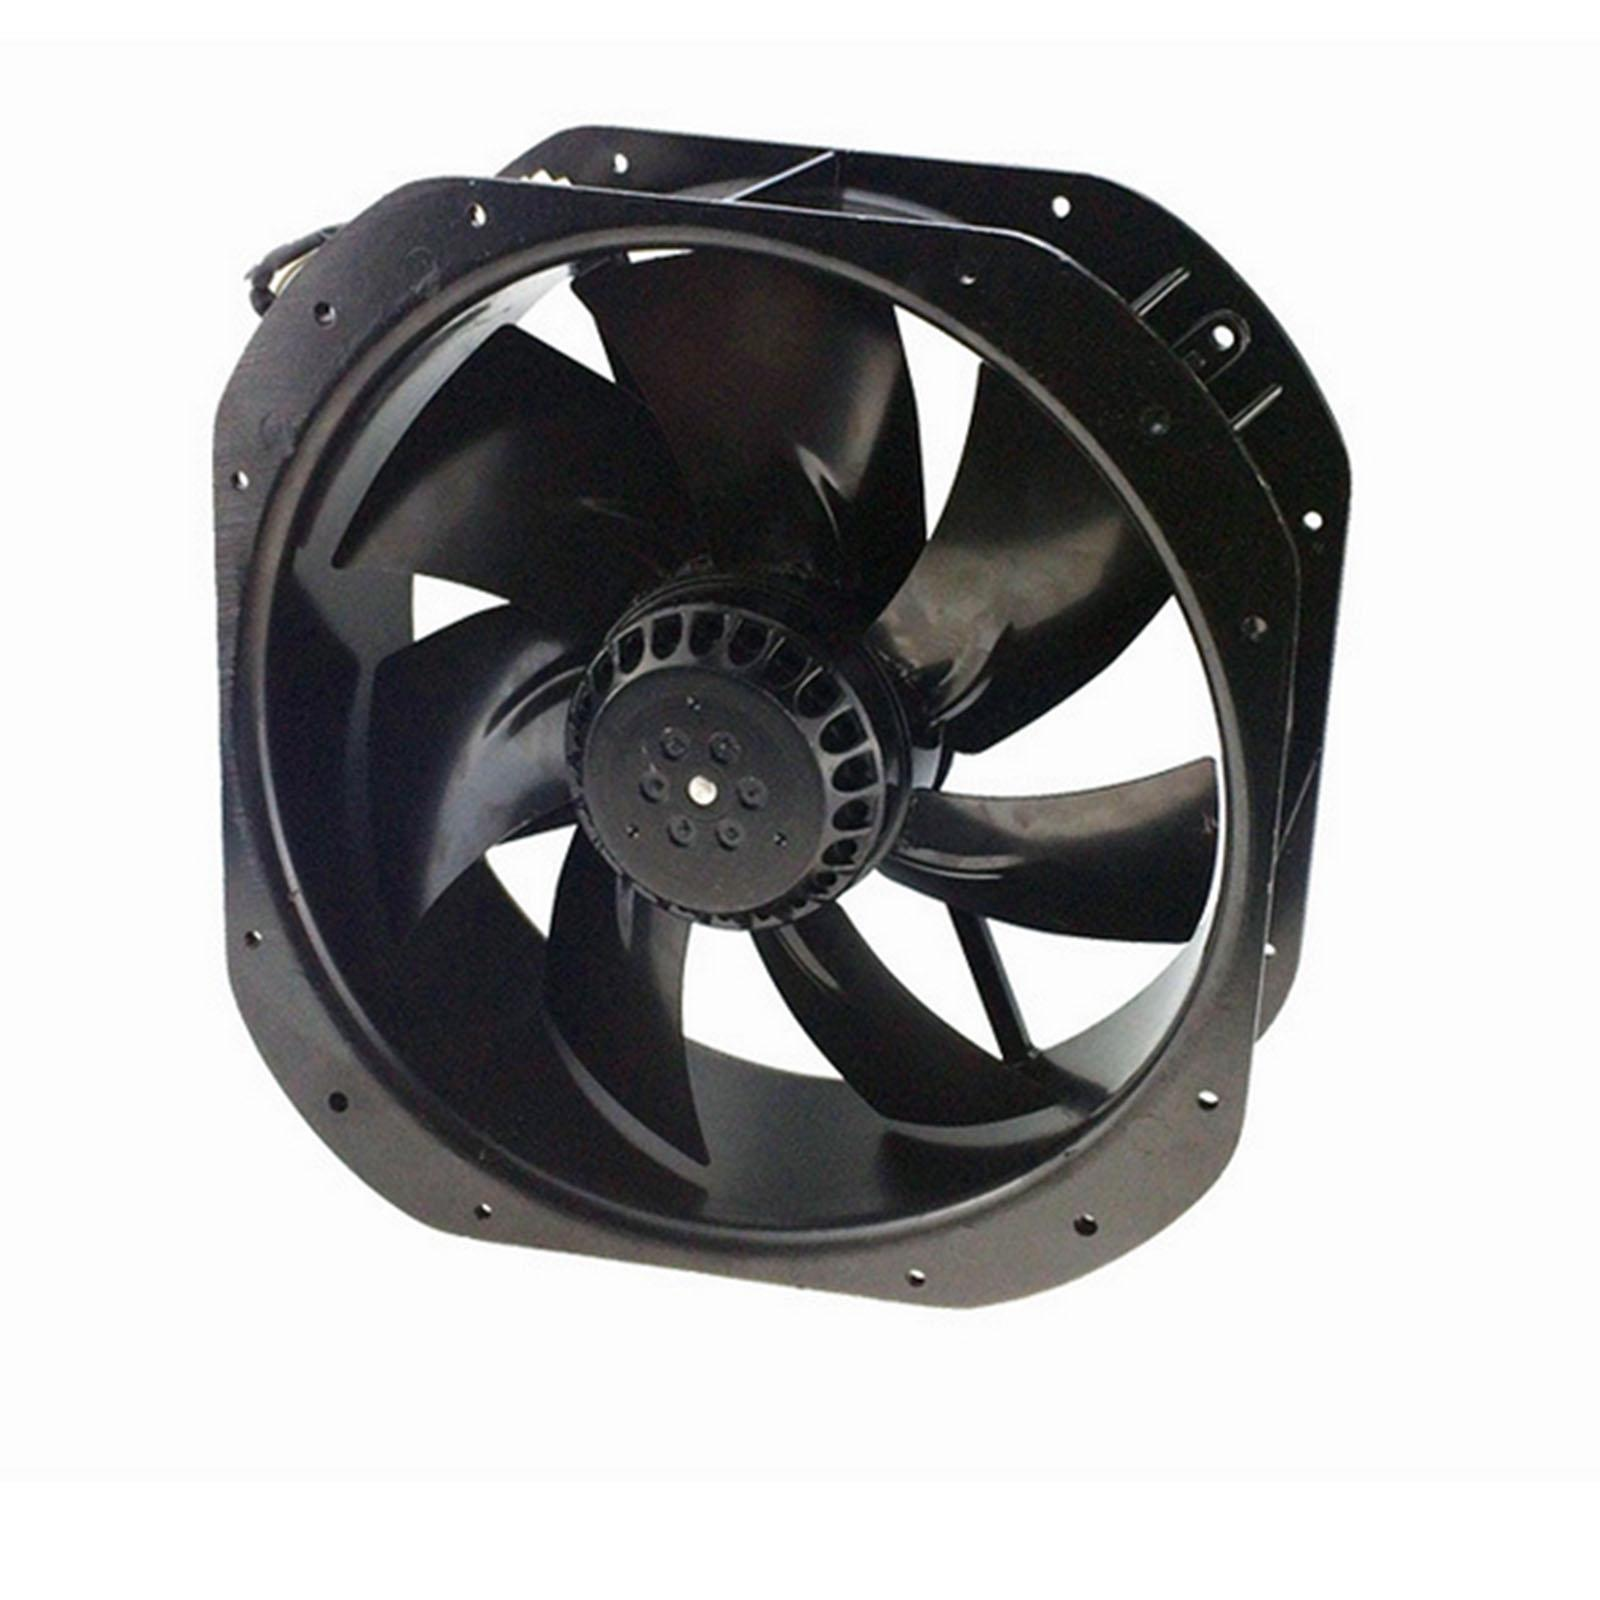 220V AC 280x280x80mm Axial Radiator Fan 1341CFM 2400RPM Ball Bearing High Speed 220v ac 280x280x80mm axial radiator fan 1341cfm 2400rpm ball bearing high speed